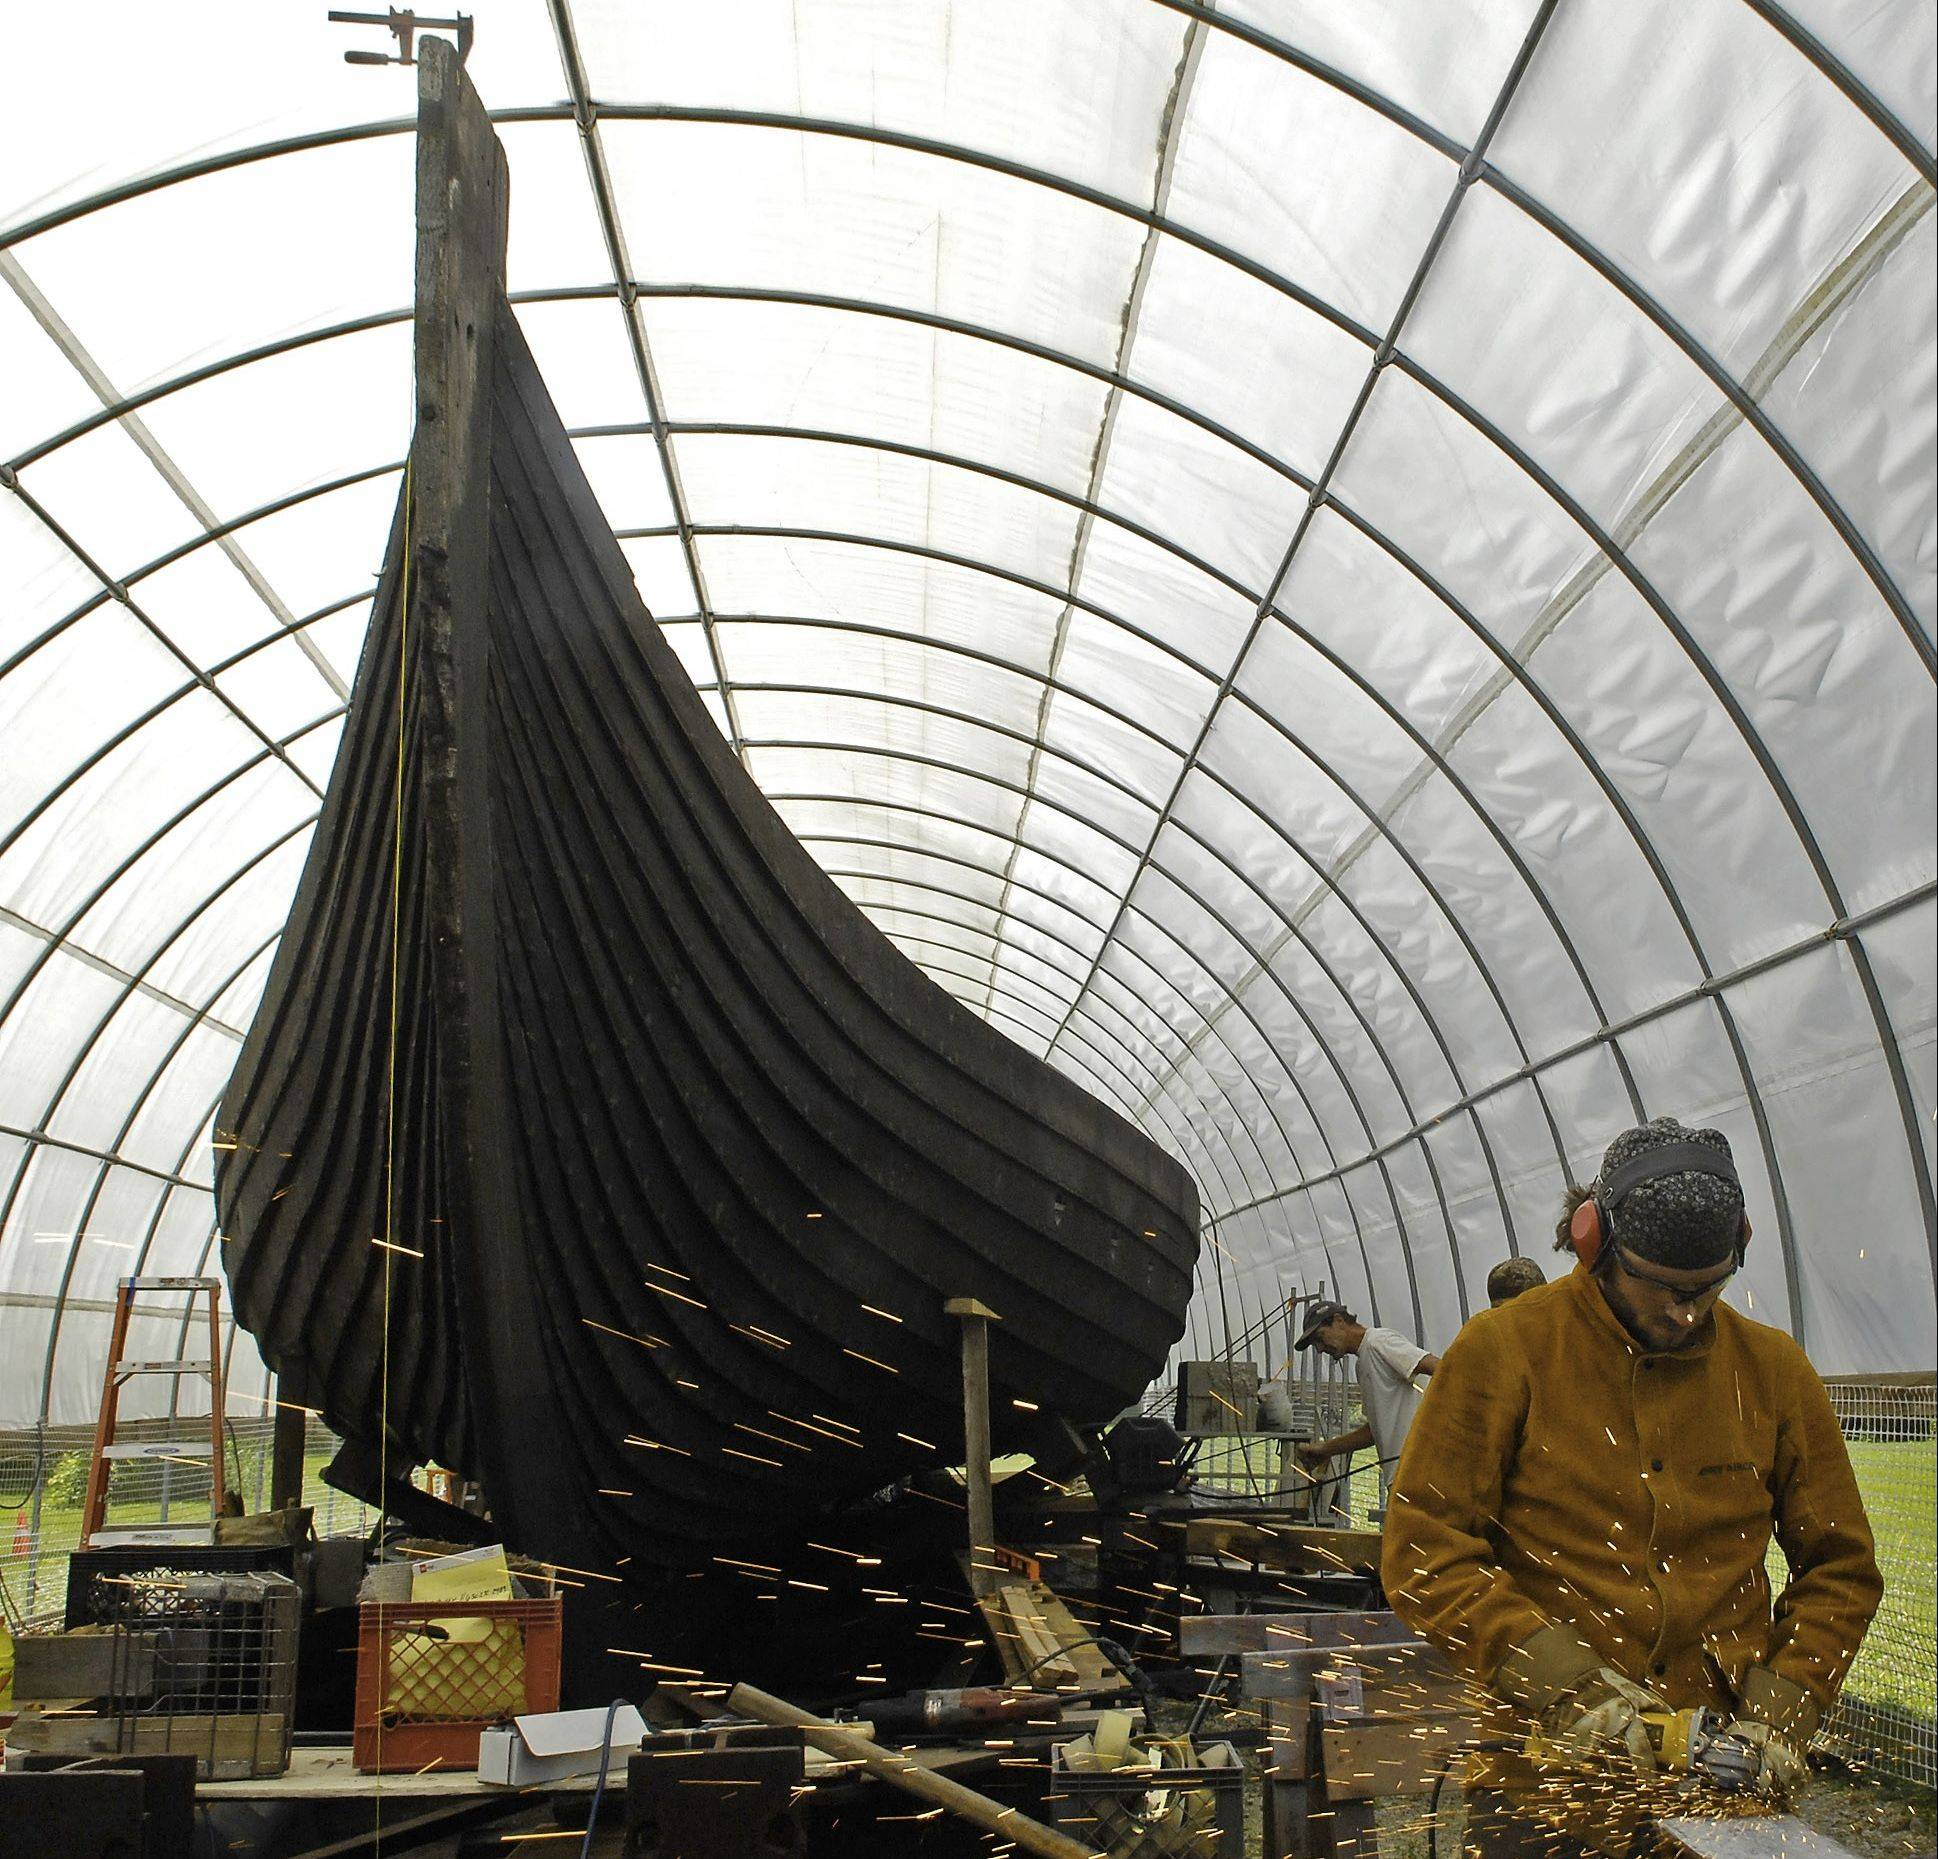 A worker grinds a piece of steel for a brace as work is done to stabilize and repair the replica Viking ship in Geneva. The copy of a 9th-century Viking ship was sailed to the Chicago from Norway for the World's Fair Columbian Exposition in 1893.